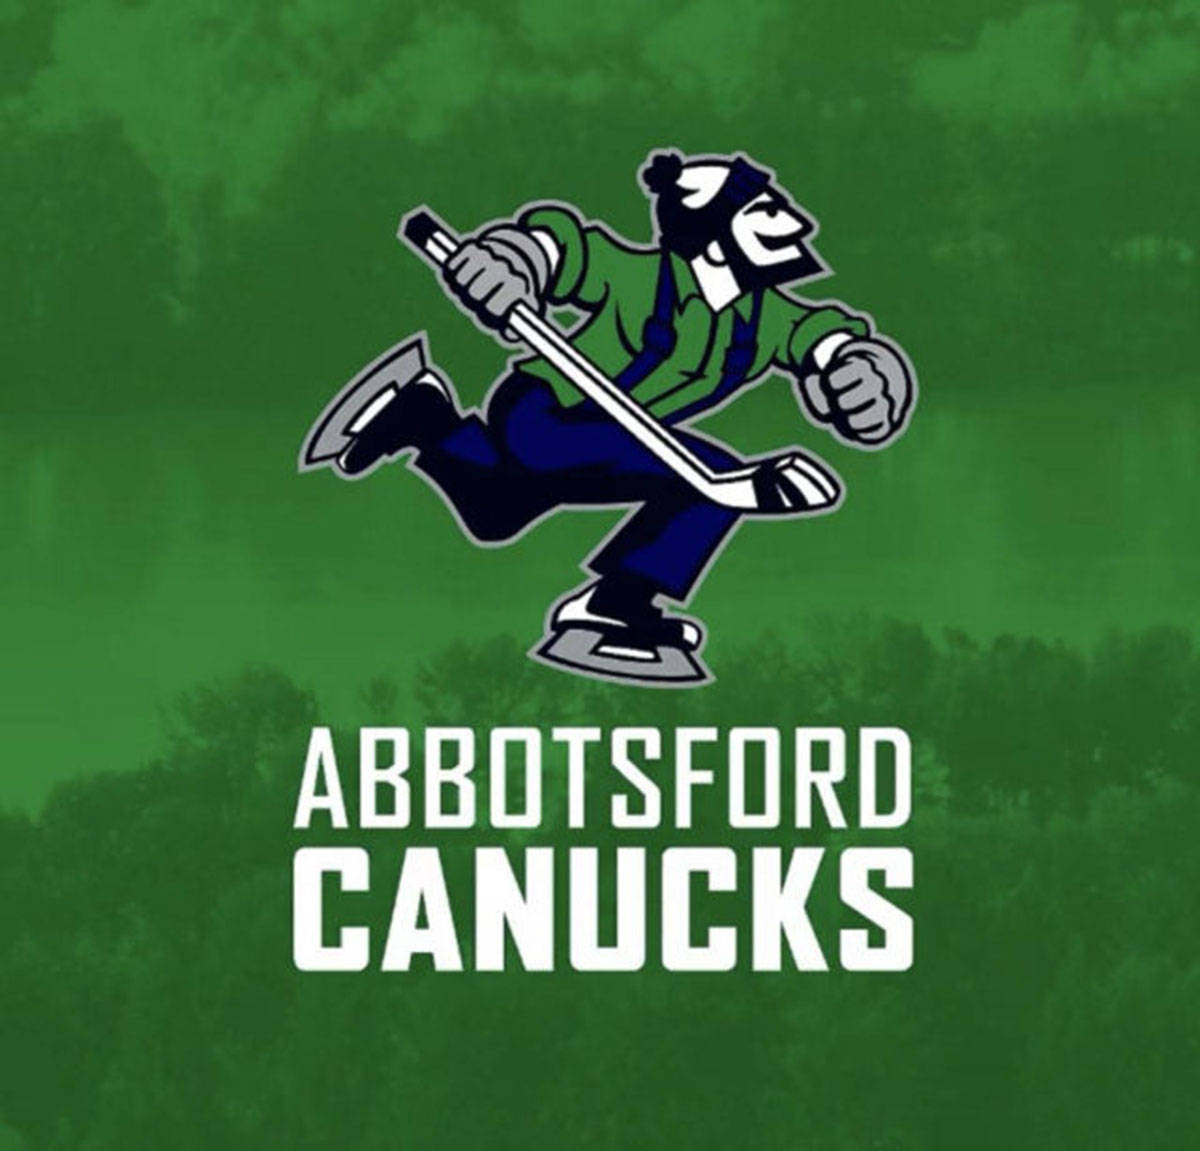 Fans have a peek of what the Abbotsford Canucks roster may look like after day one of NHL free agency.